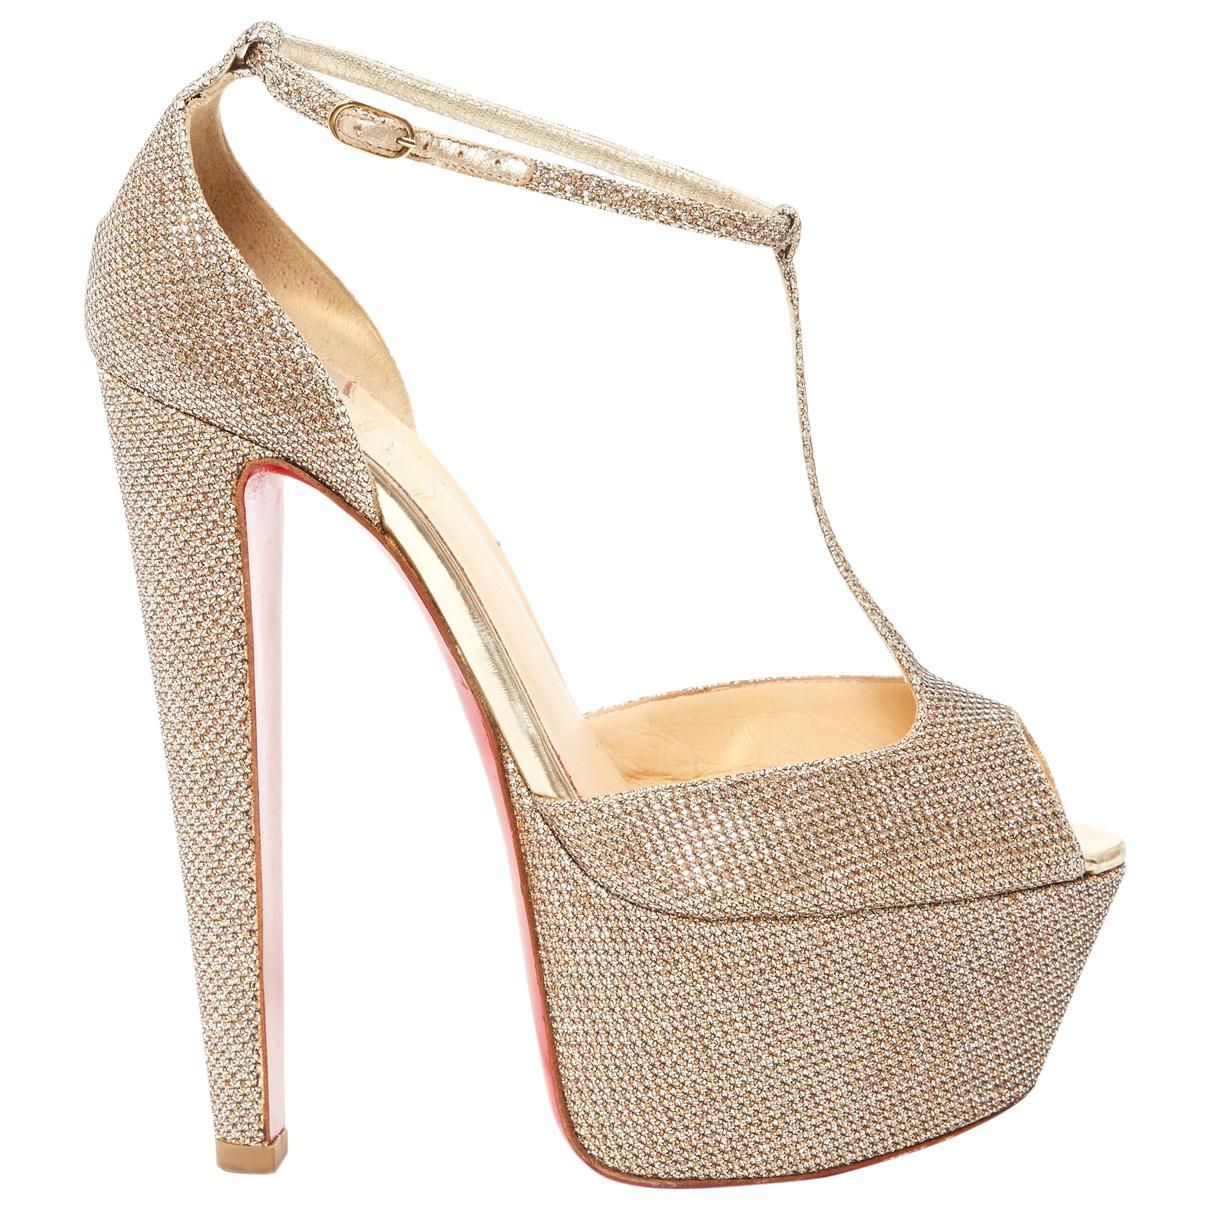 Pre-owned - Cloth sandals Christian Louboutin 92zjsbFz6P